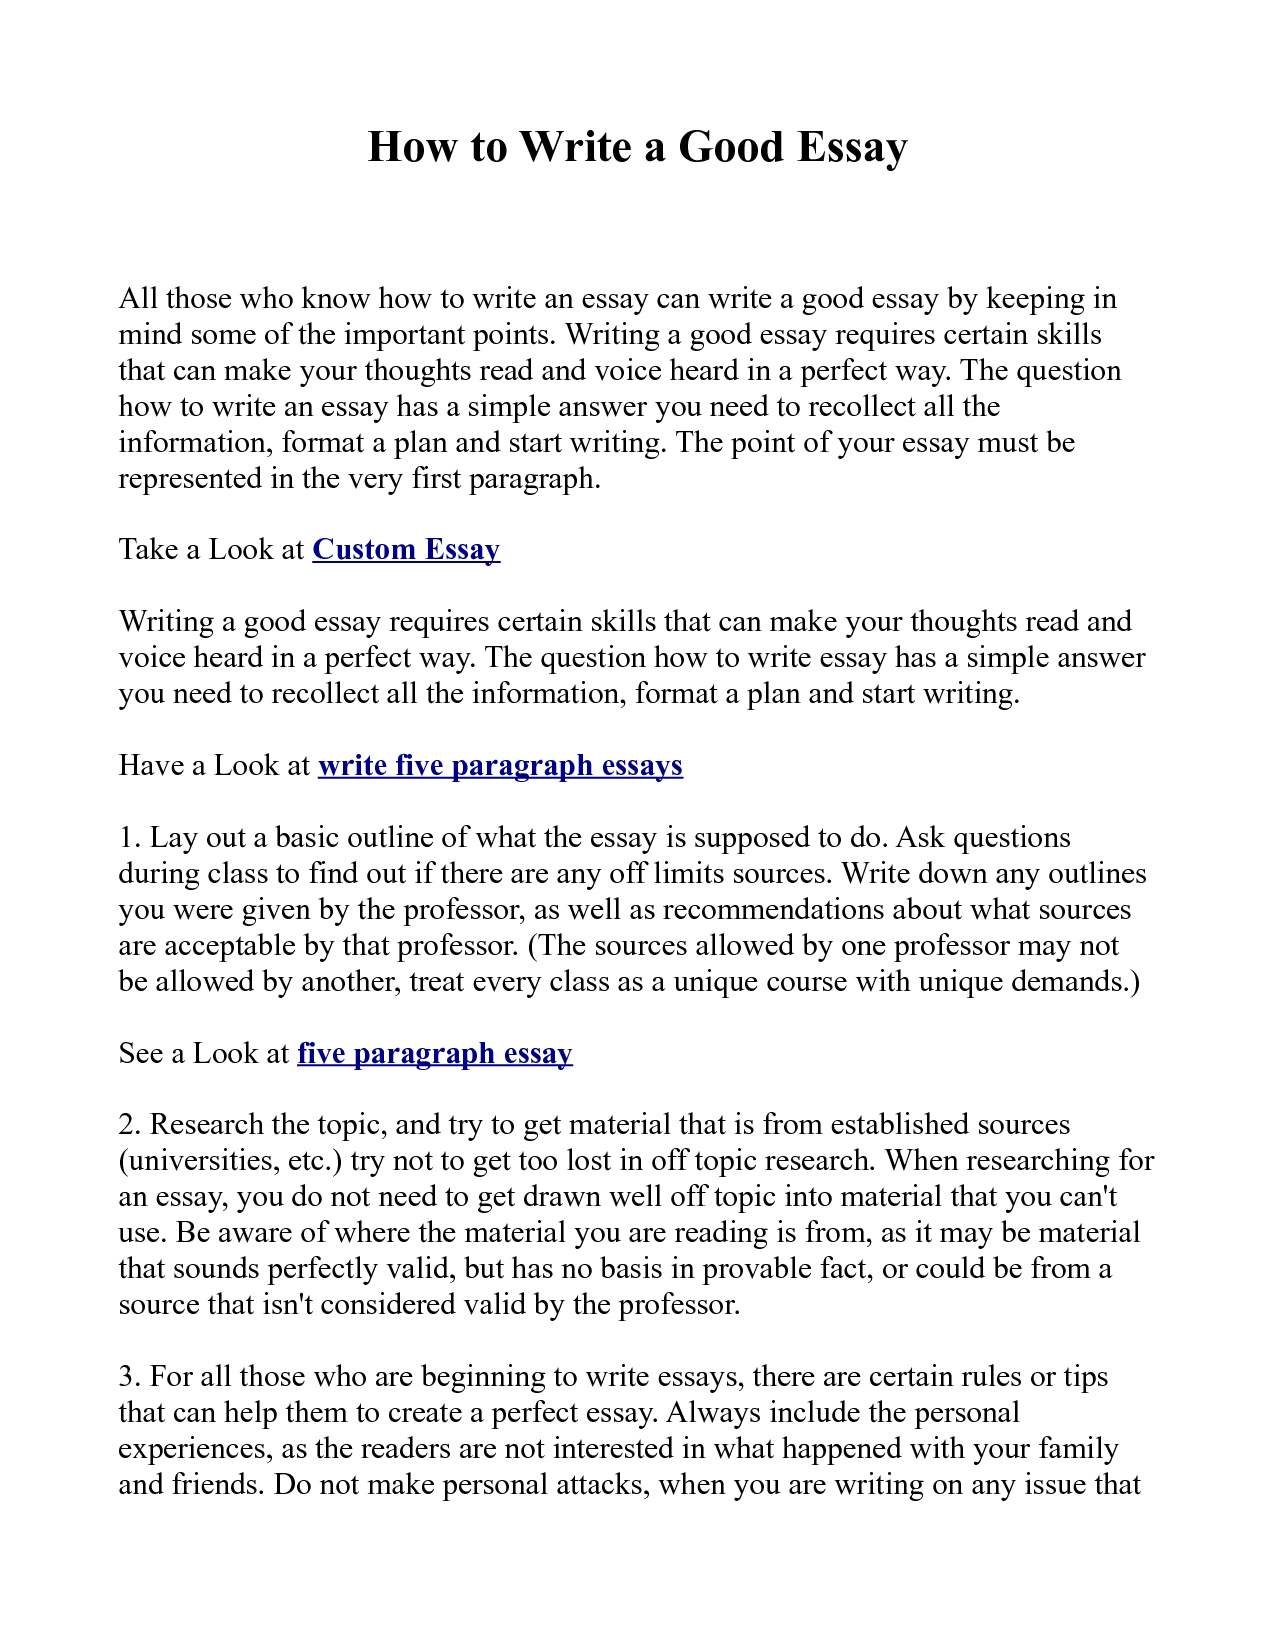 008 Best Essay Topics Ex1id5s6cl Surprising Composition For High School Students College Job Interview Full